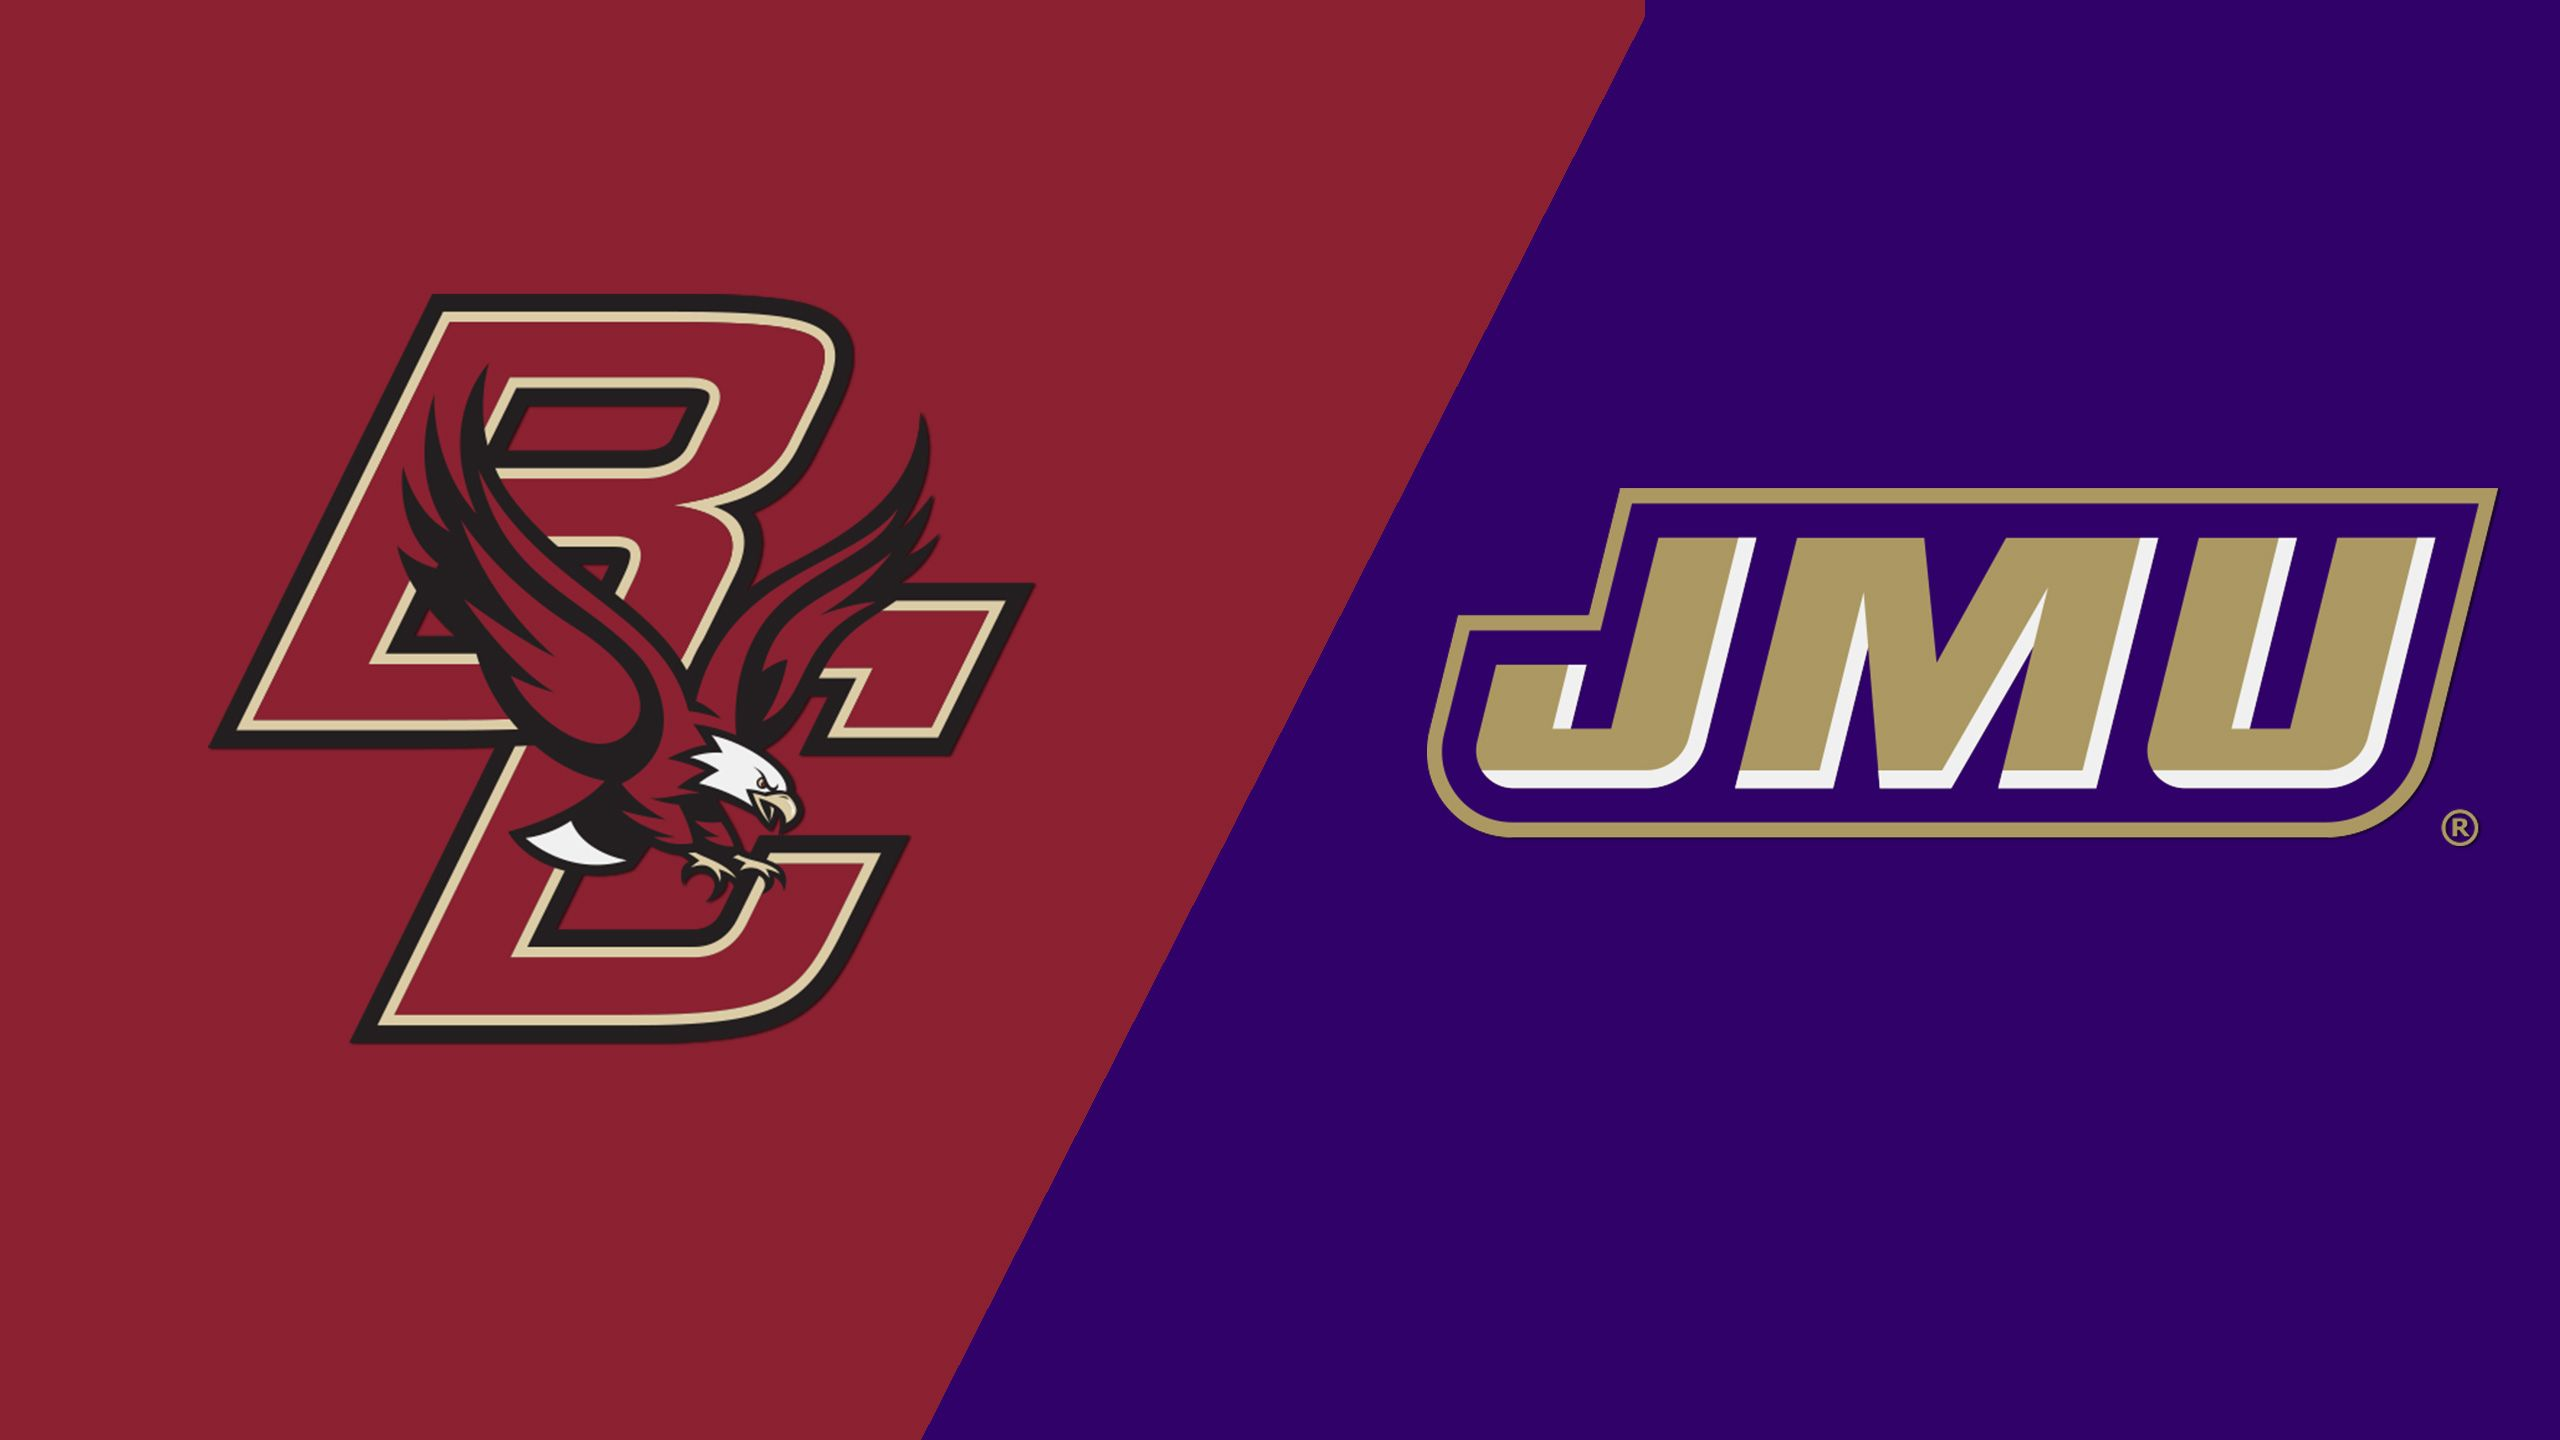 #4 Boston College vs. #3 James Madison (Championship) (NCAA Women's Lacrosse Championship)